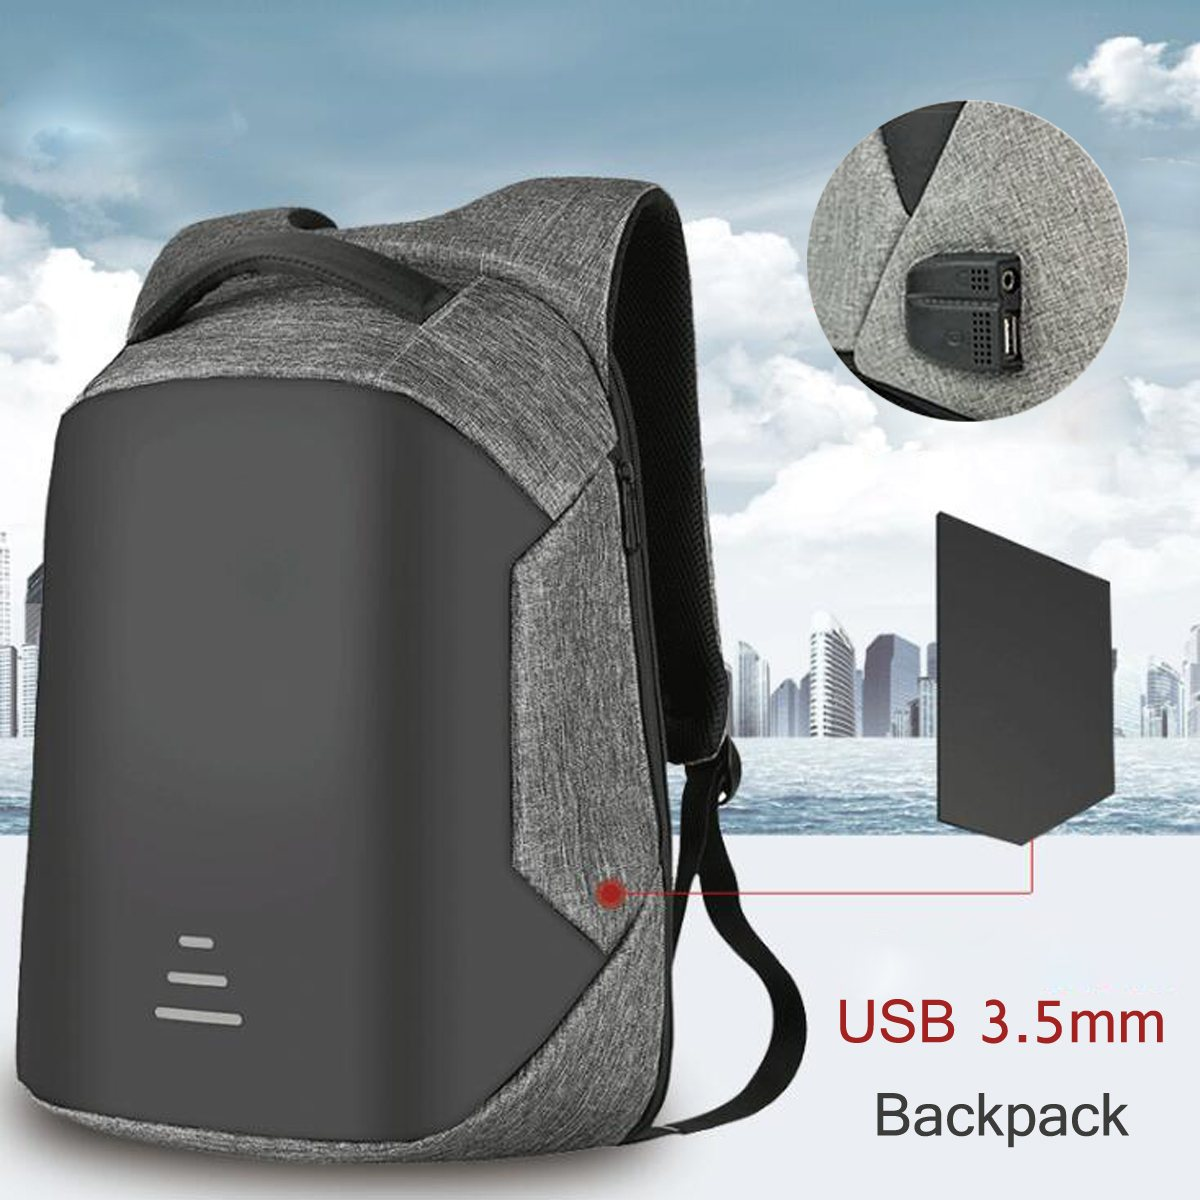 Unisex Anti-Thief Waterproof Laptop Backpack with External USB Charge 3.5mm Port Laptop Outdoor Men Women Back pack Bag